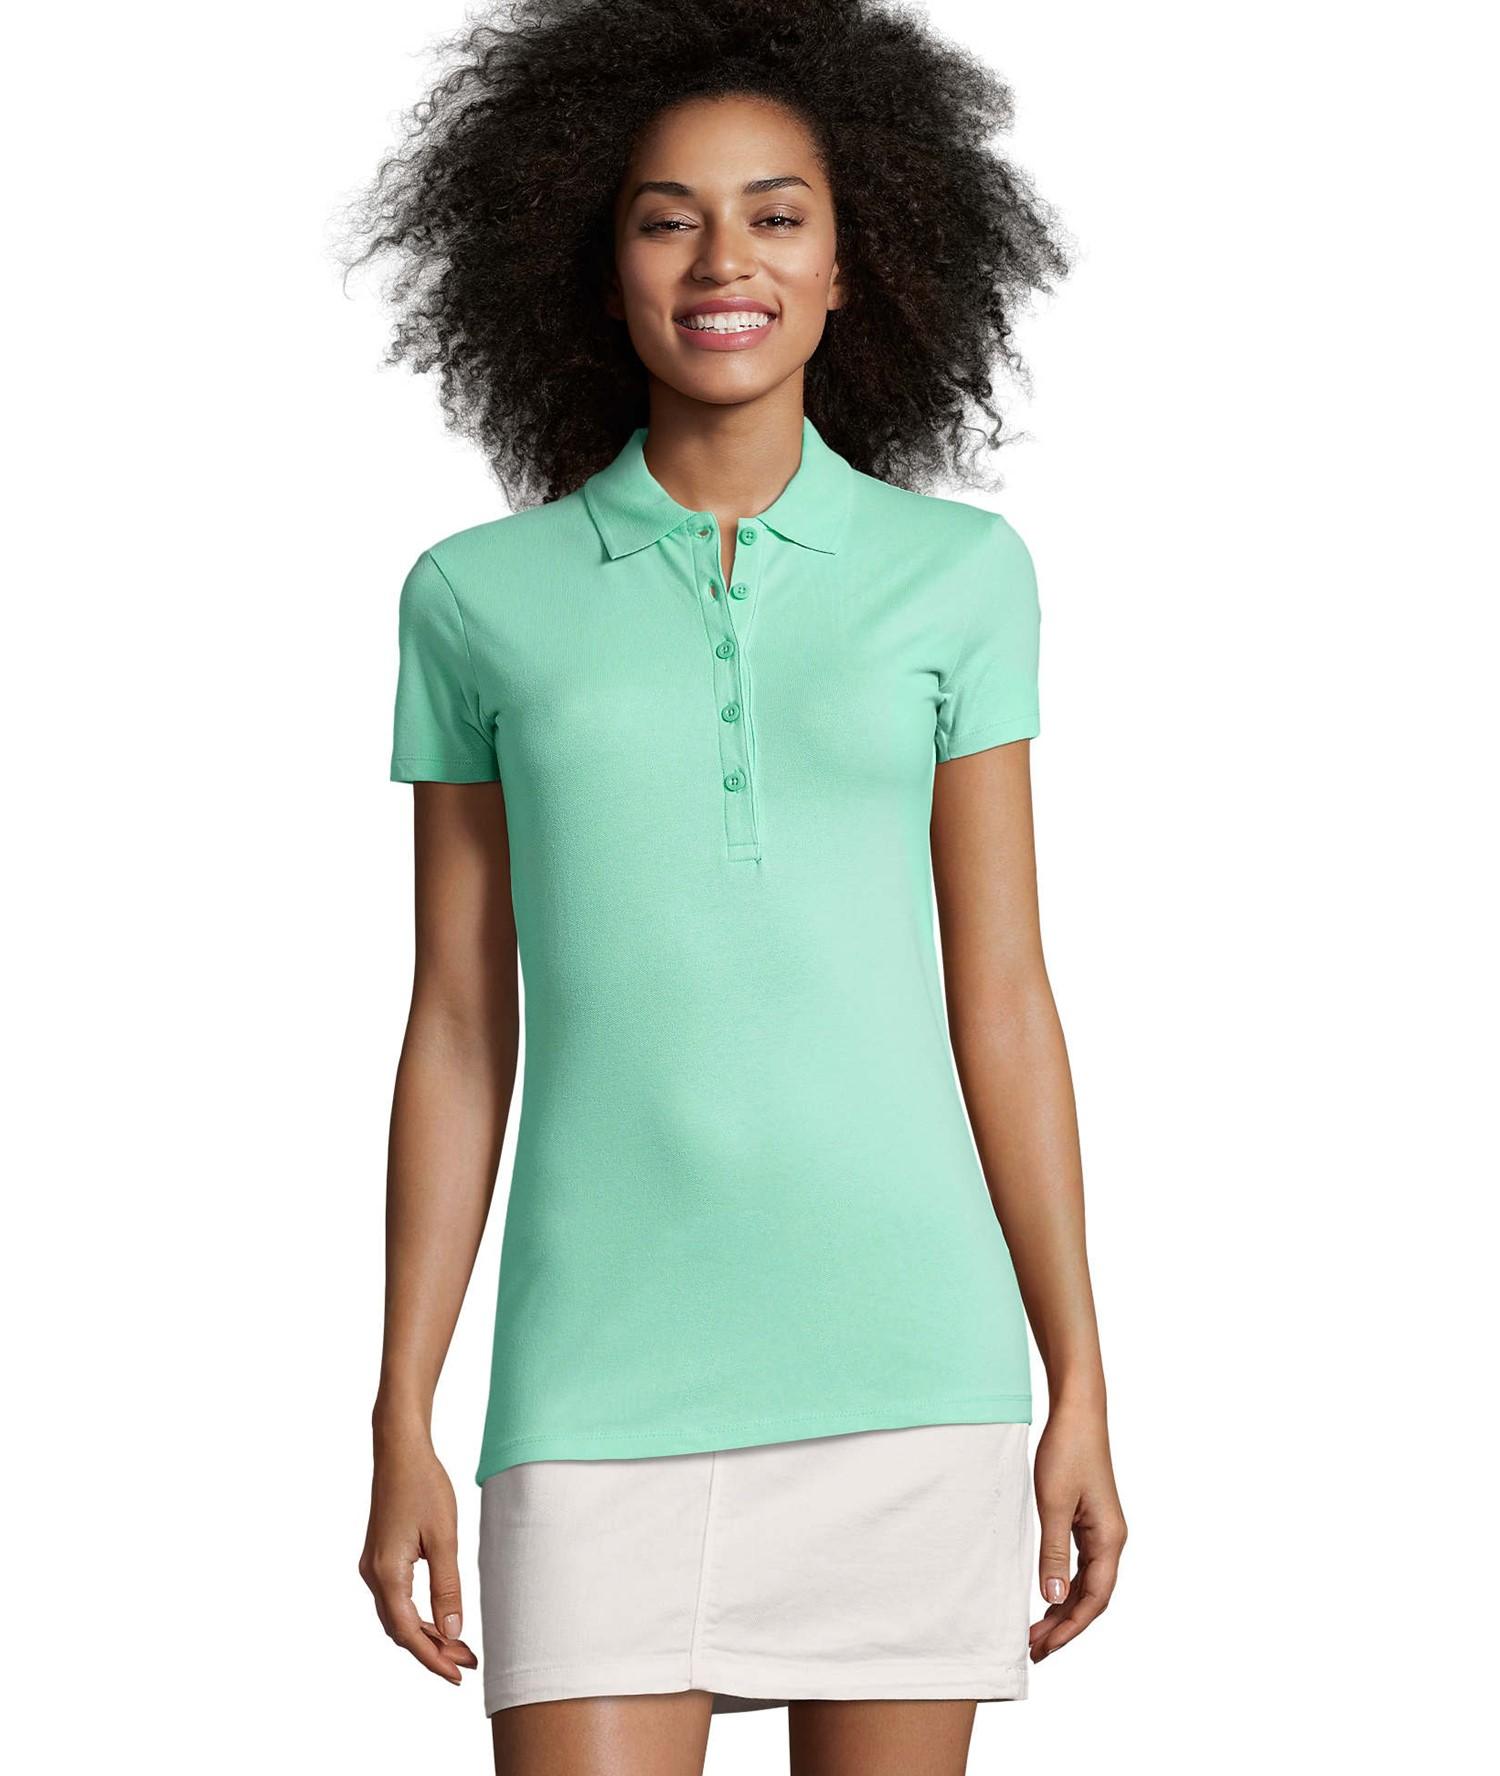 PHOENIX WOMEN COTTON-ELASTANE POLO SHIRT